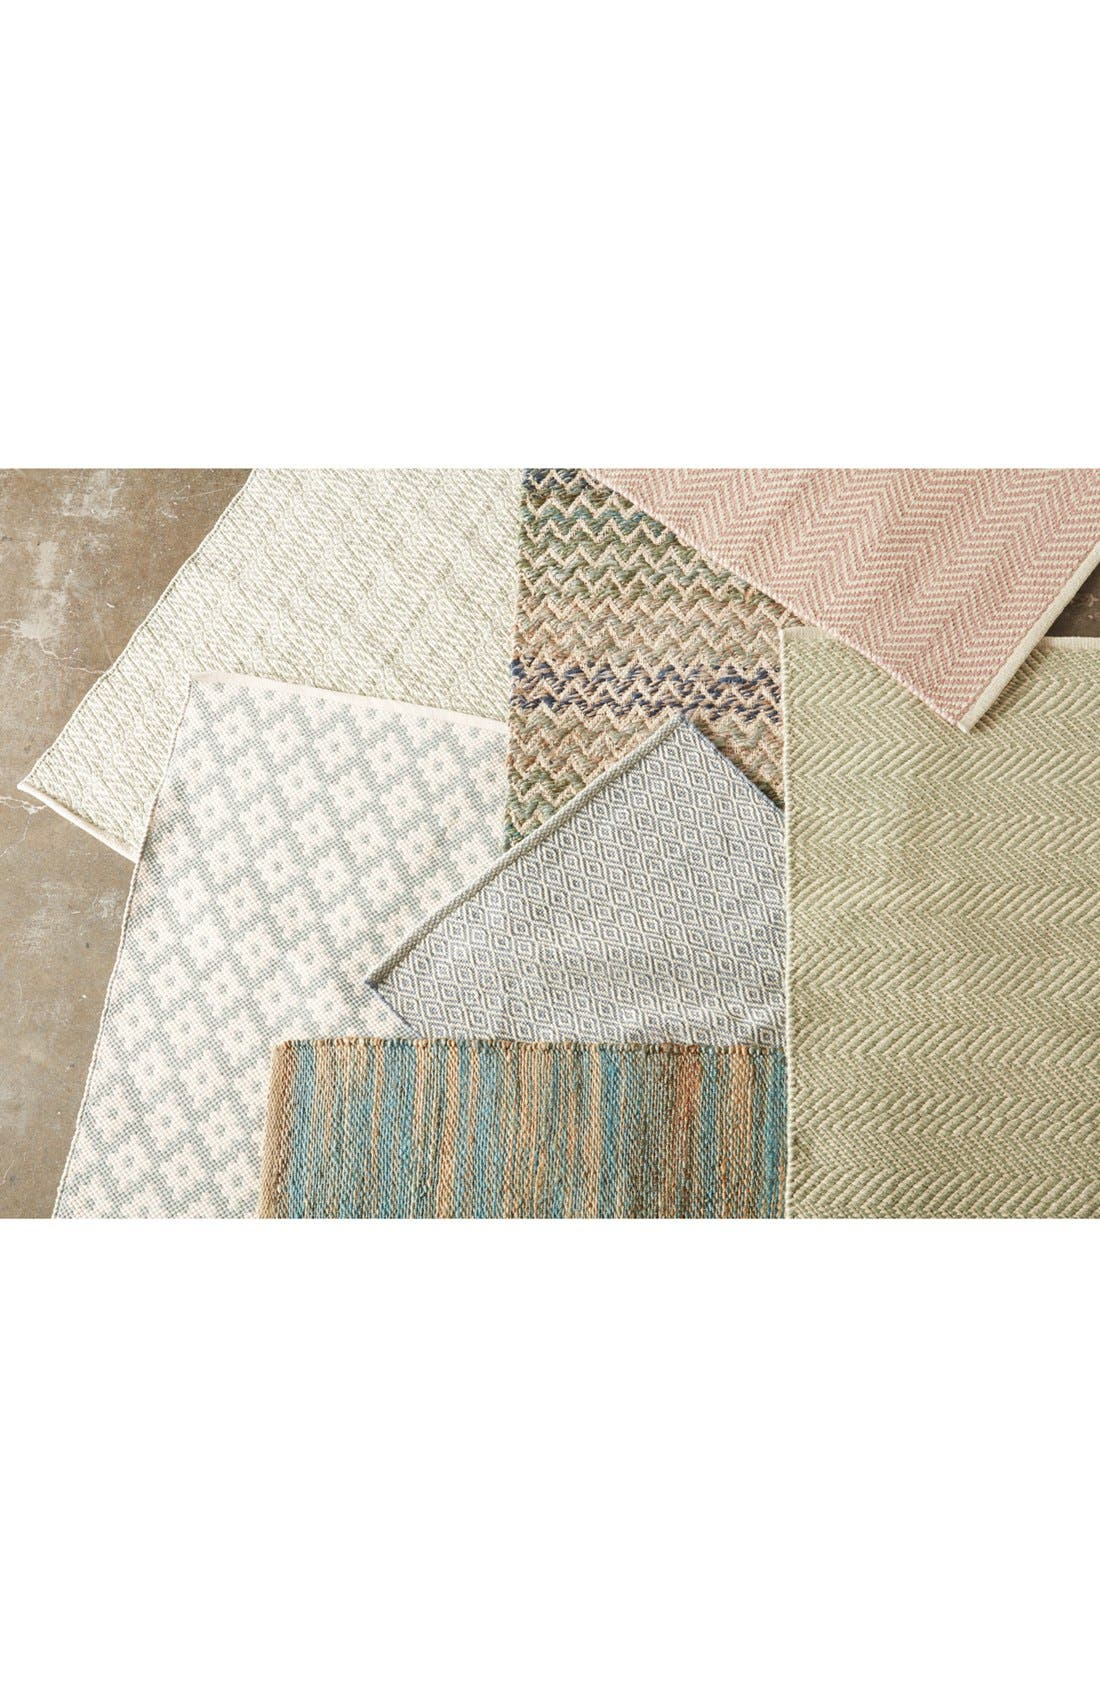 'Samode' Indoor/Outdoor Rug,                             Alternate thumbnail 3, color,